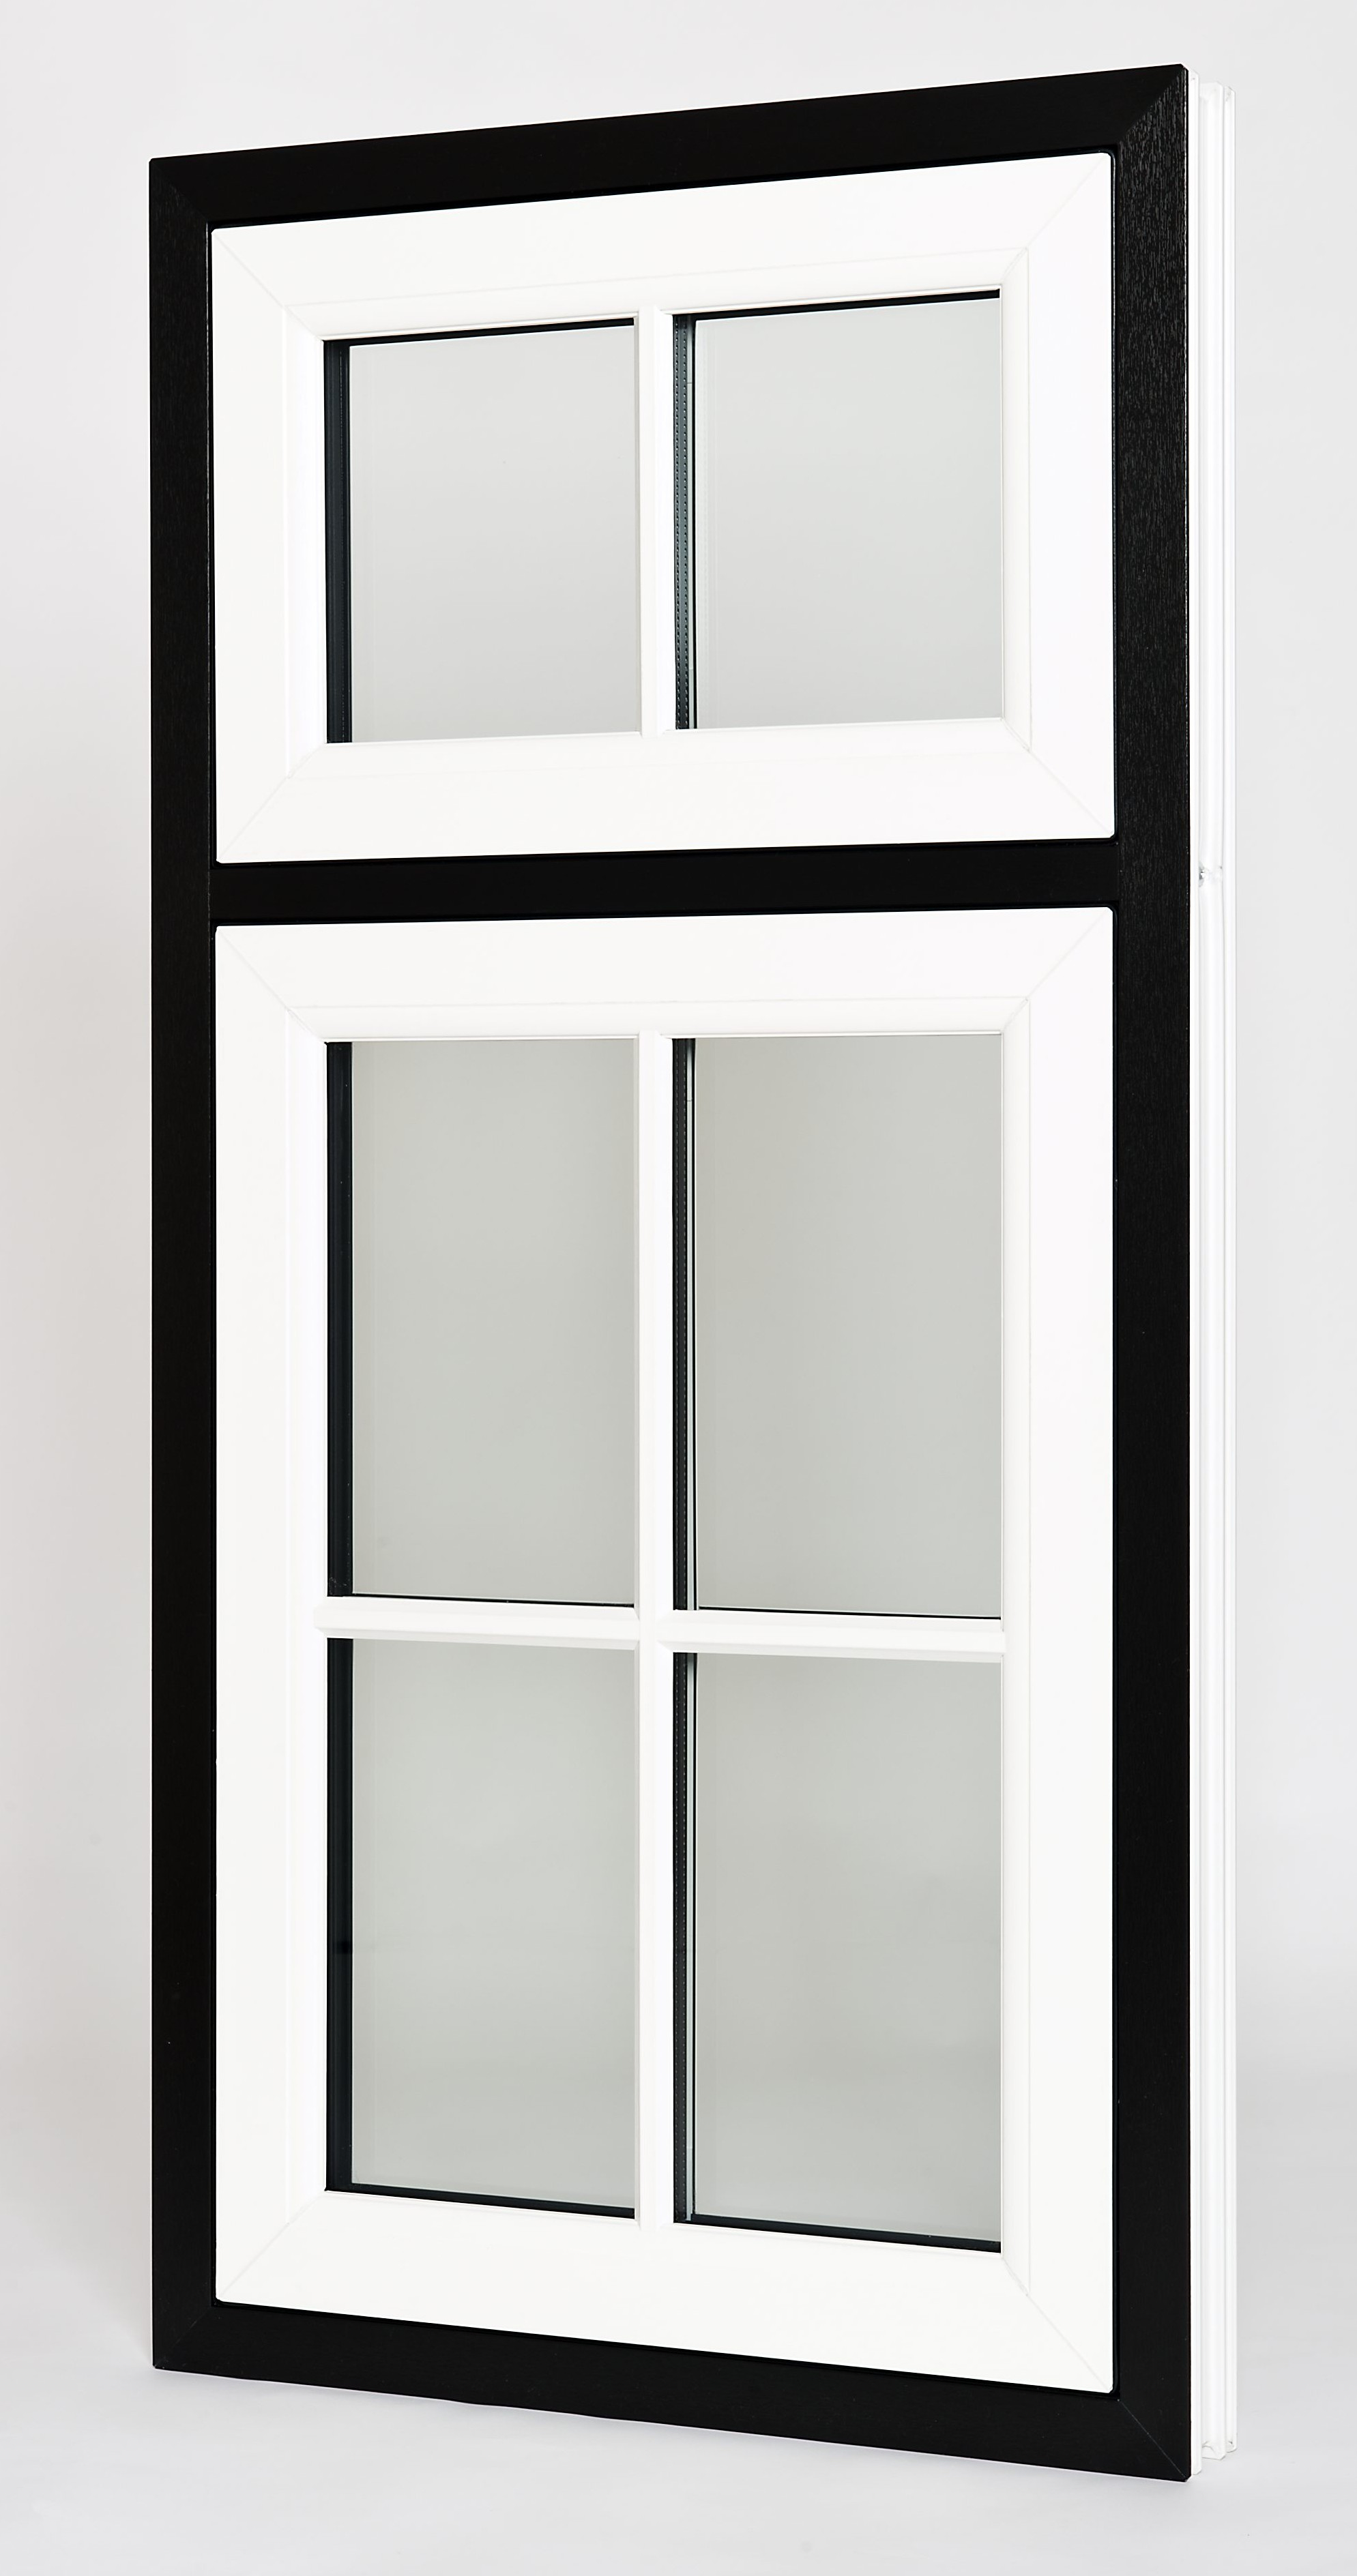 Flushsash Windows Whiteline Manufacturing Ltd